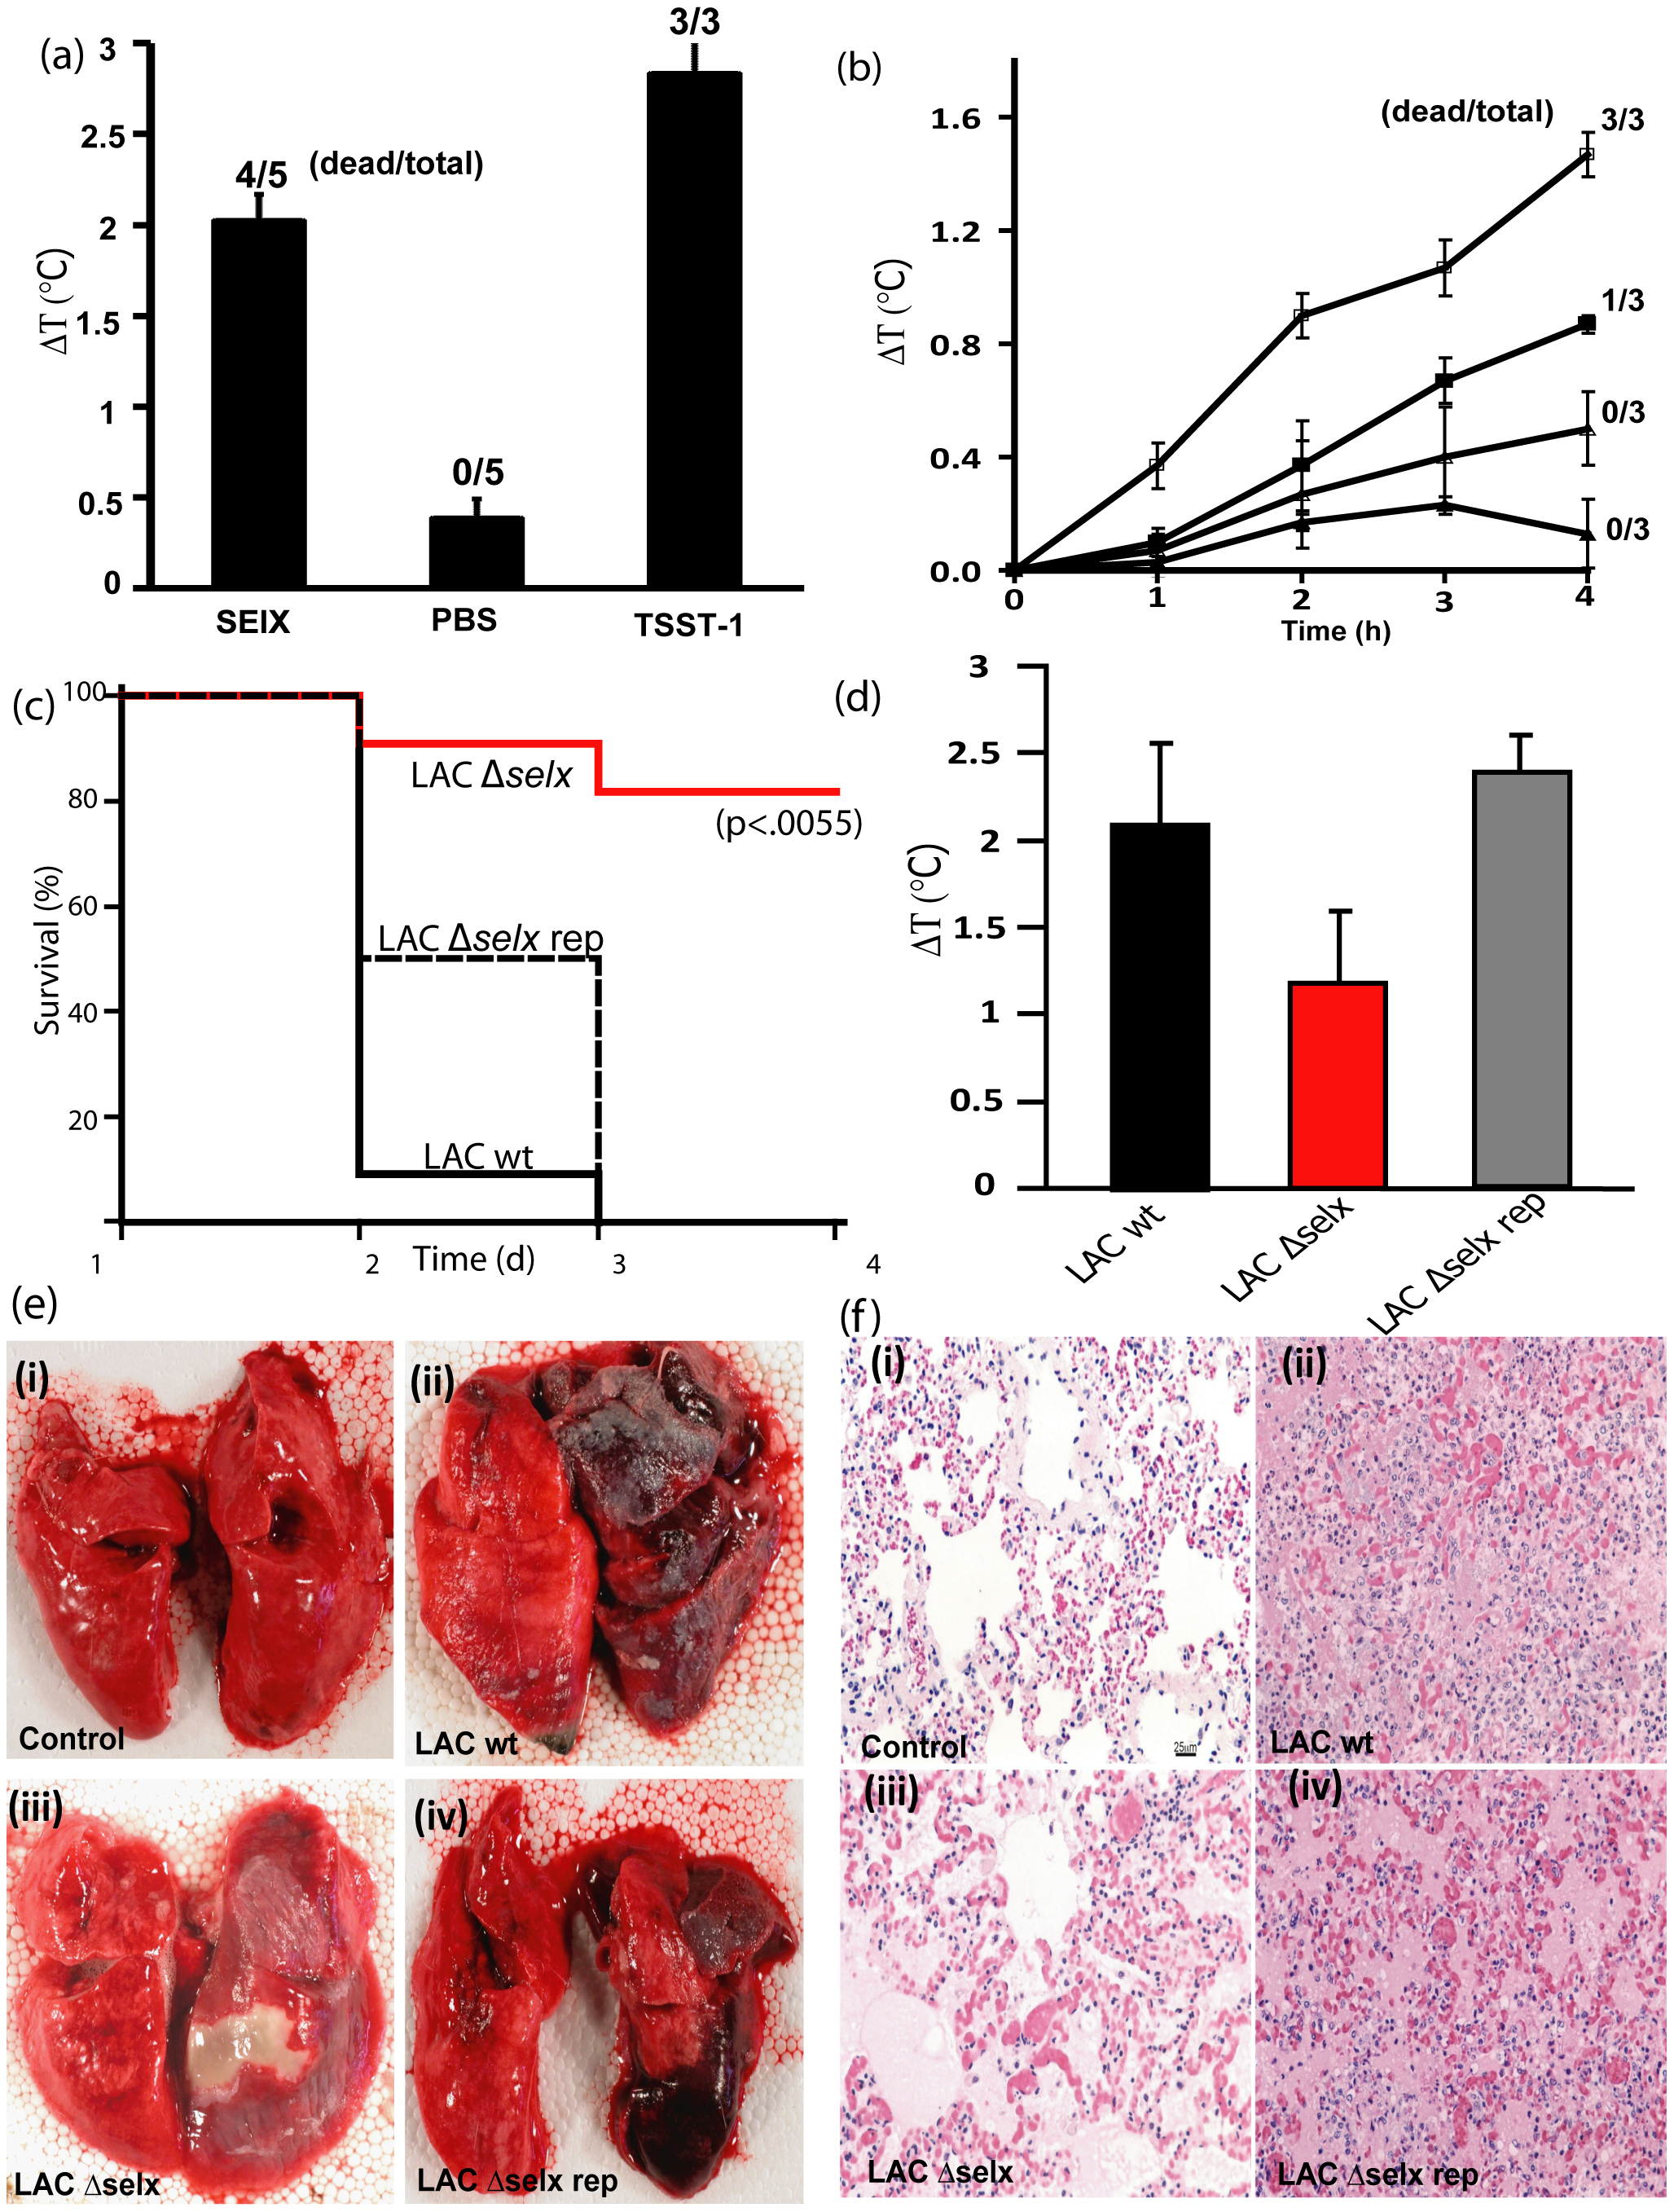 SElX causes TSS and contributes to the severity and lethality of necrotizing pneumonia caused by CA-MRSA USA300.